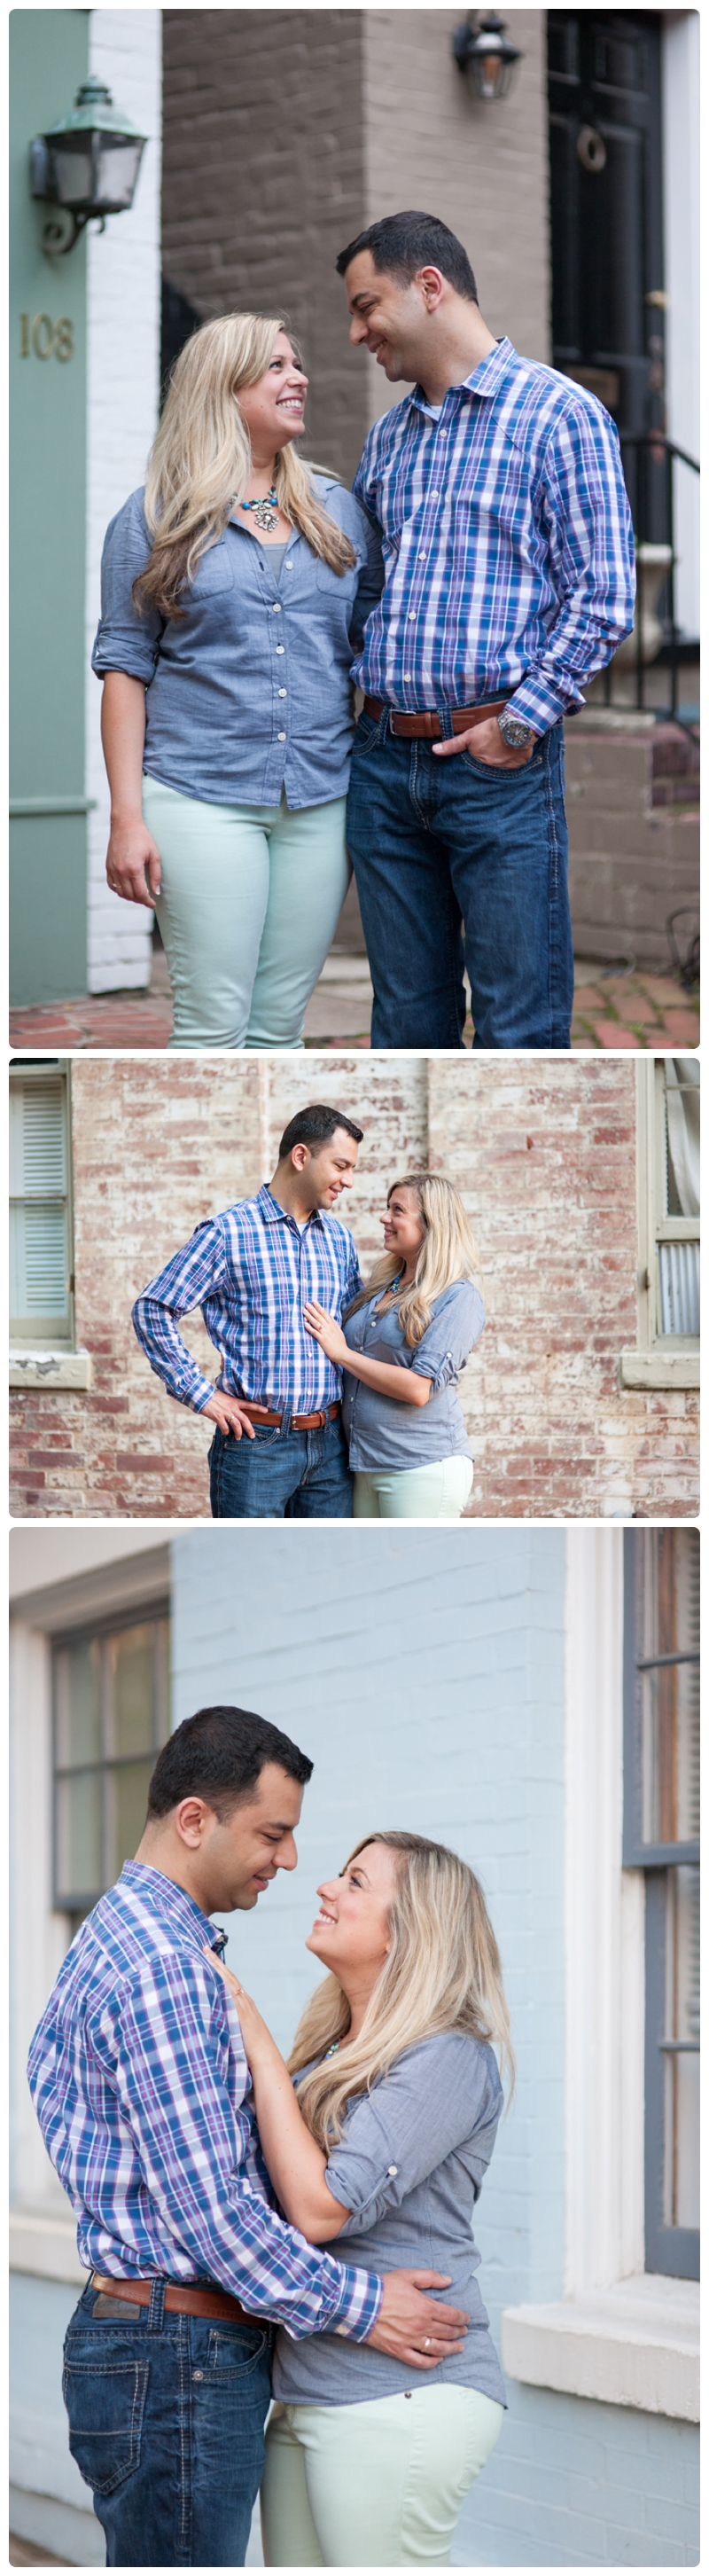 Engagement Session in Old Town Alexandria by www.rachaelfosterphoto.com_0026.jpg